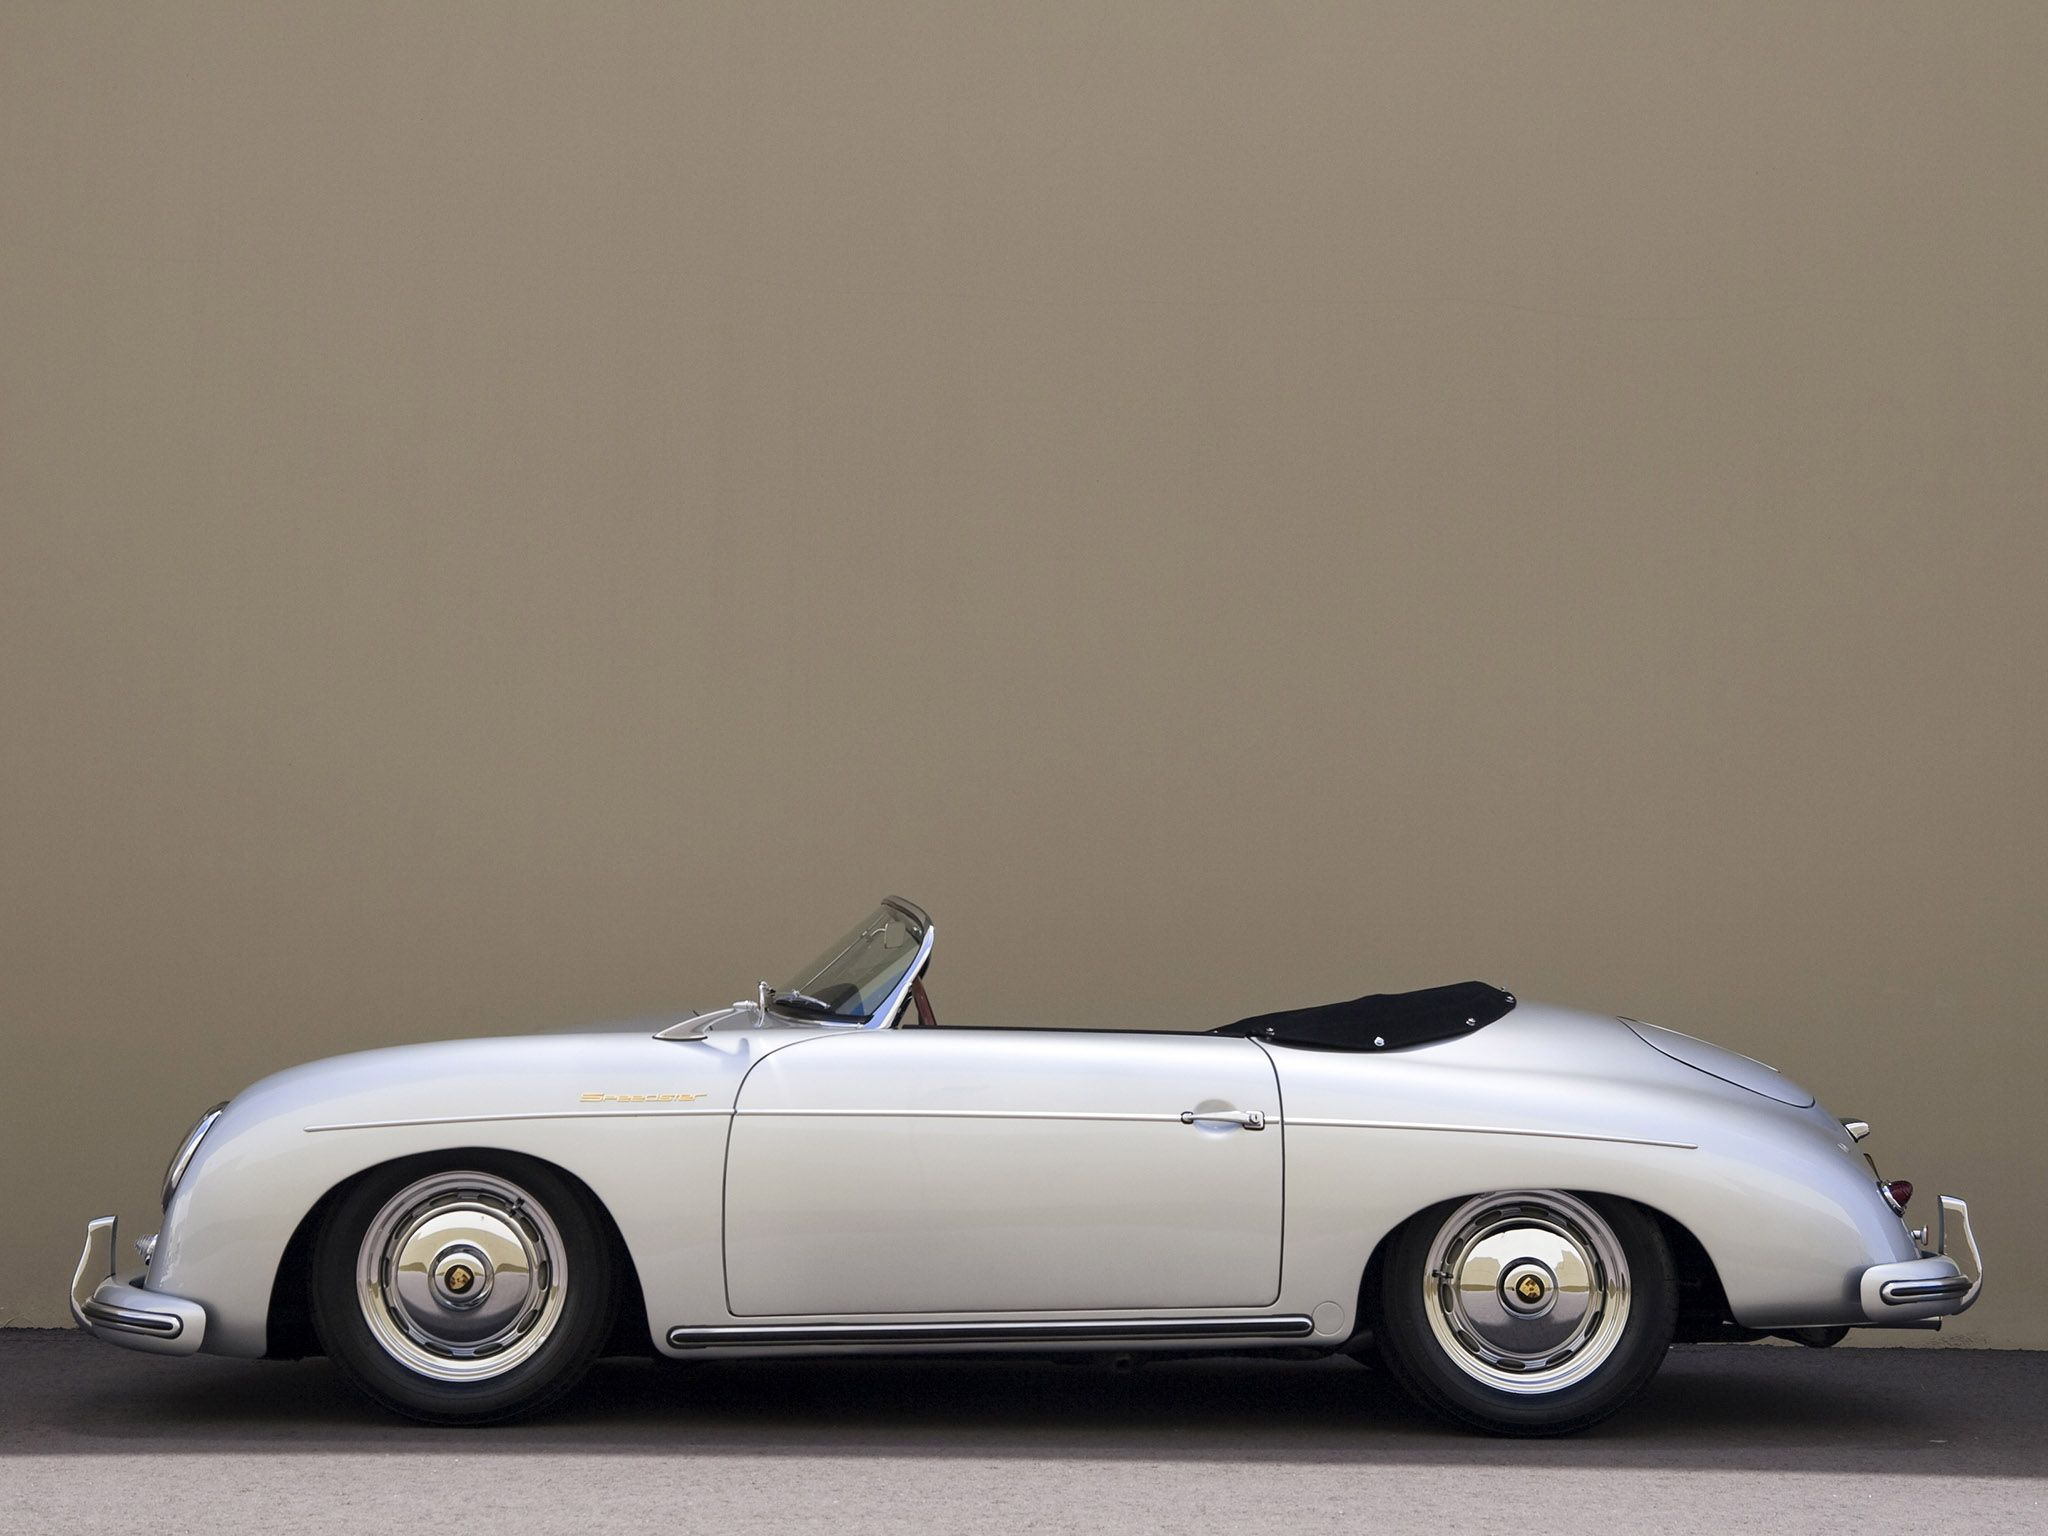 Porsche 356a 1600 Speedster With Images Porsche 356 Porsche